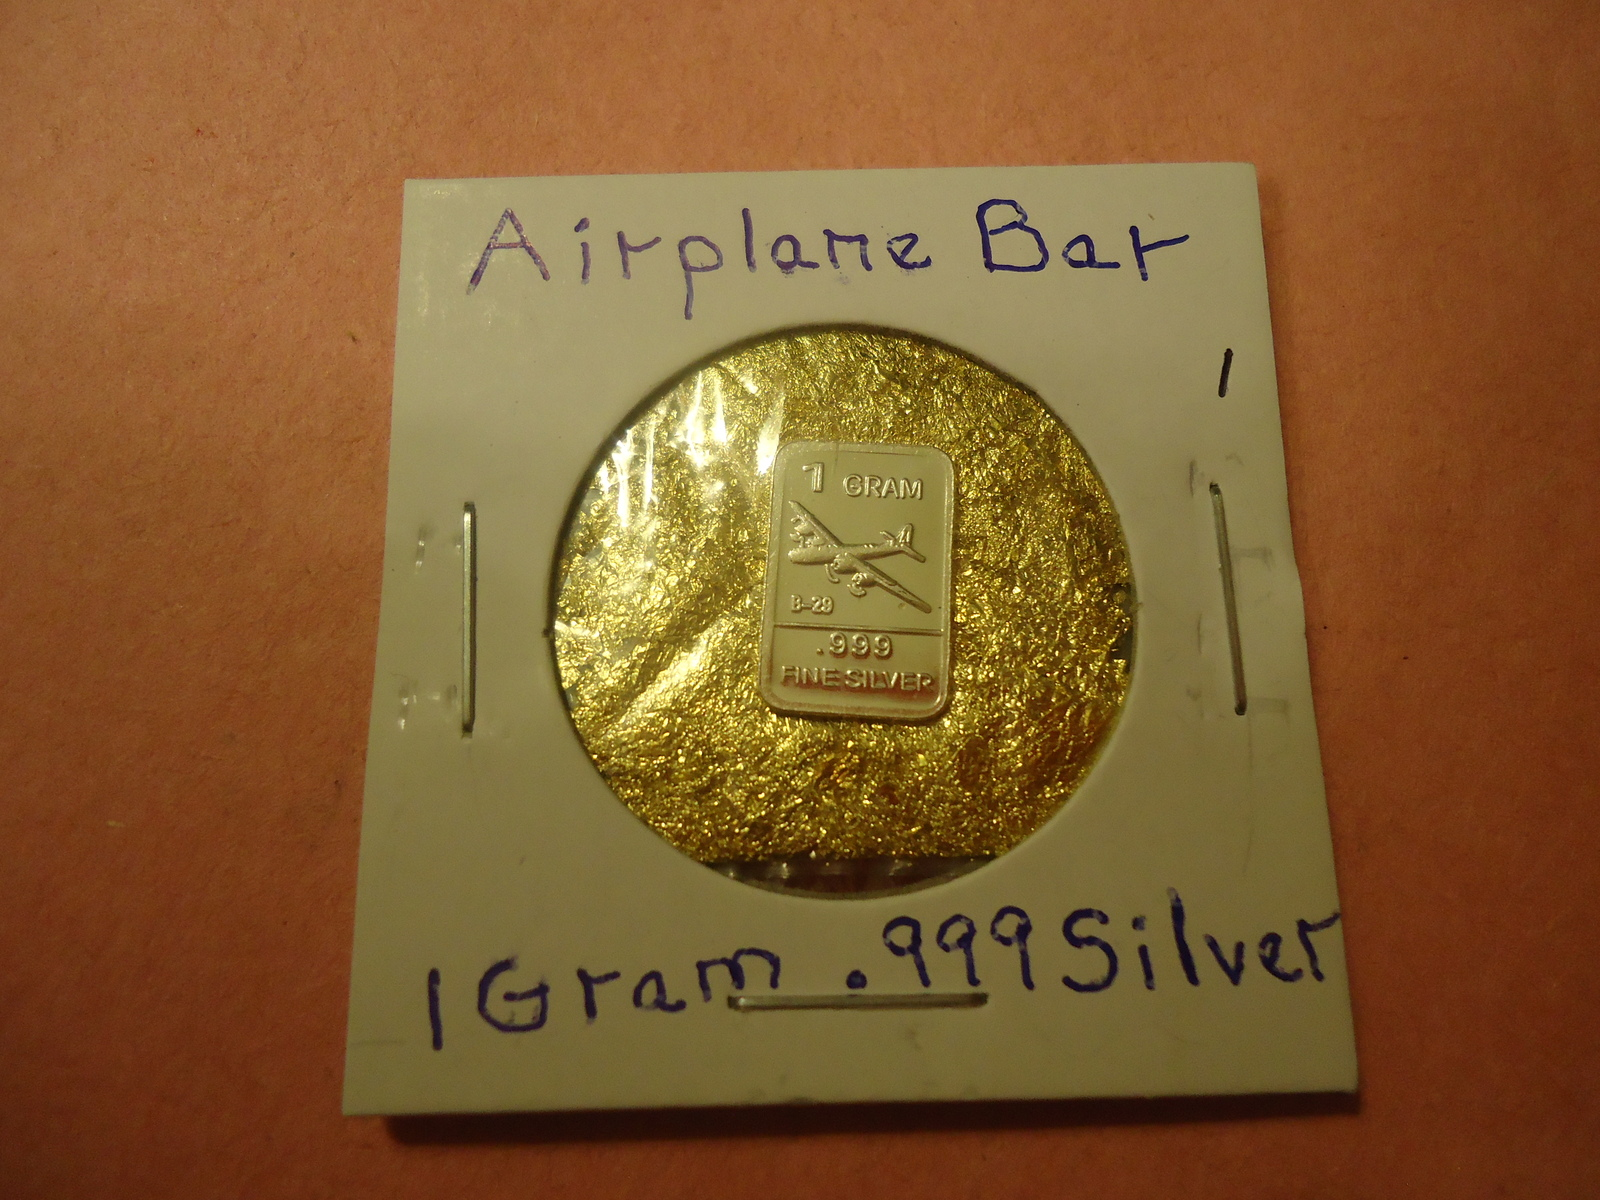 Primary image for 1 GRAM .999 SILVER AIRPLANE BAR WITH MINUTE TRACE AMOUNTS OF GOLD FLAKES